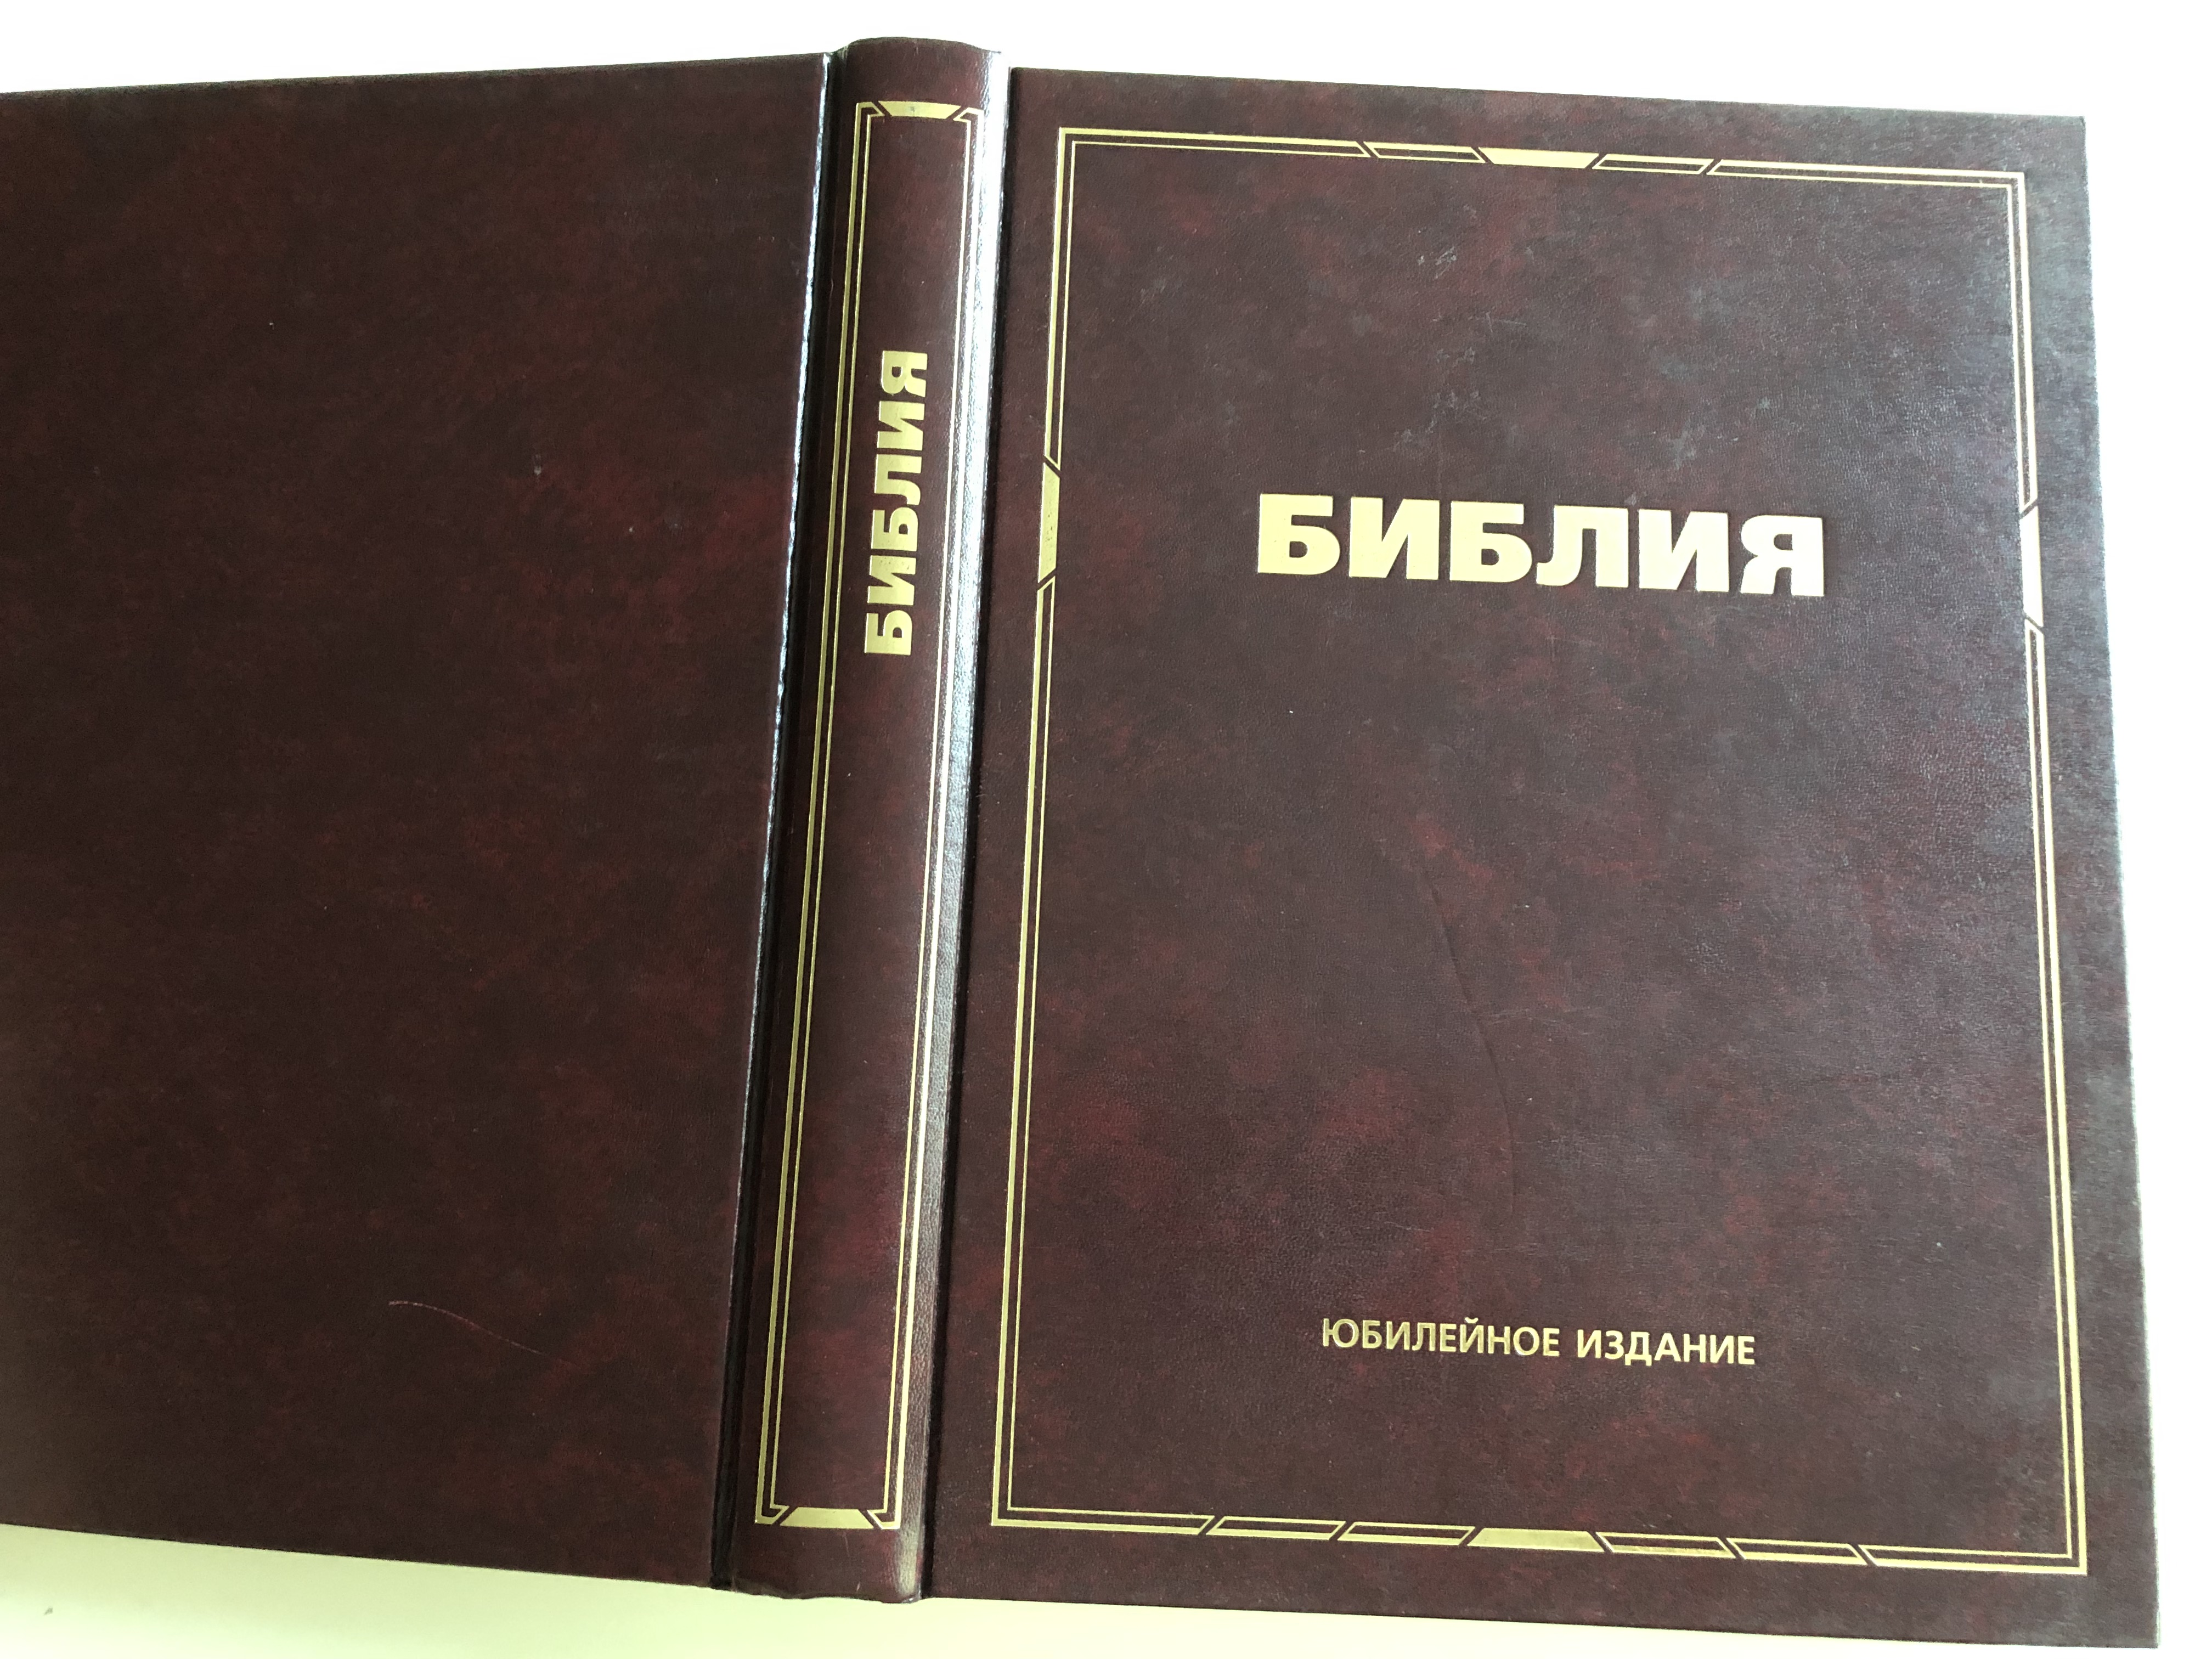 russian-language-protestant-canonized-holy-bible-anniversary-edition-hardcover-2000-light-in-the-east-glossary-color-detailed-maps-25-.jpg